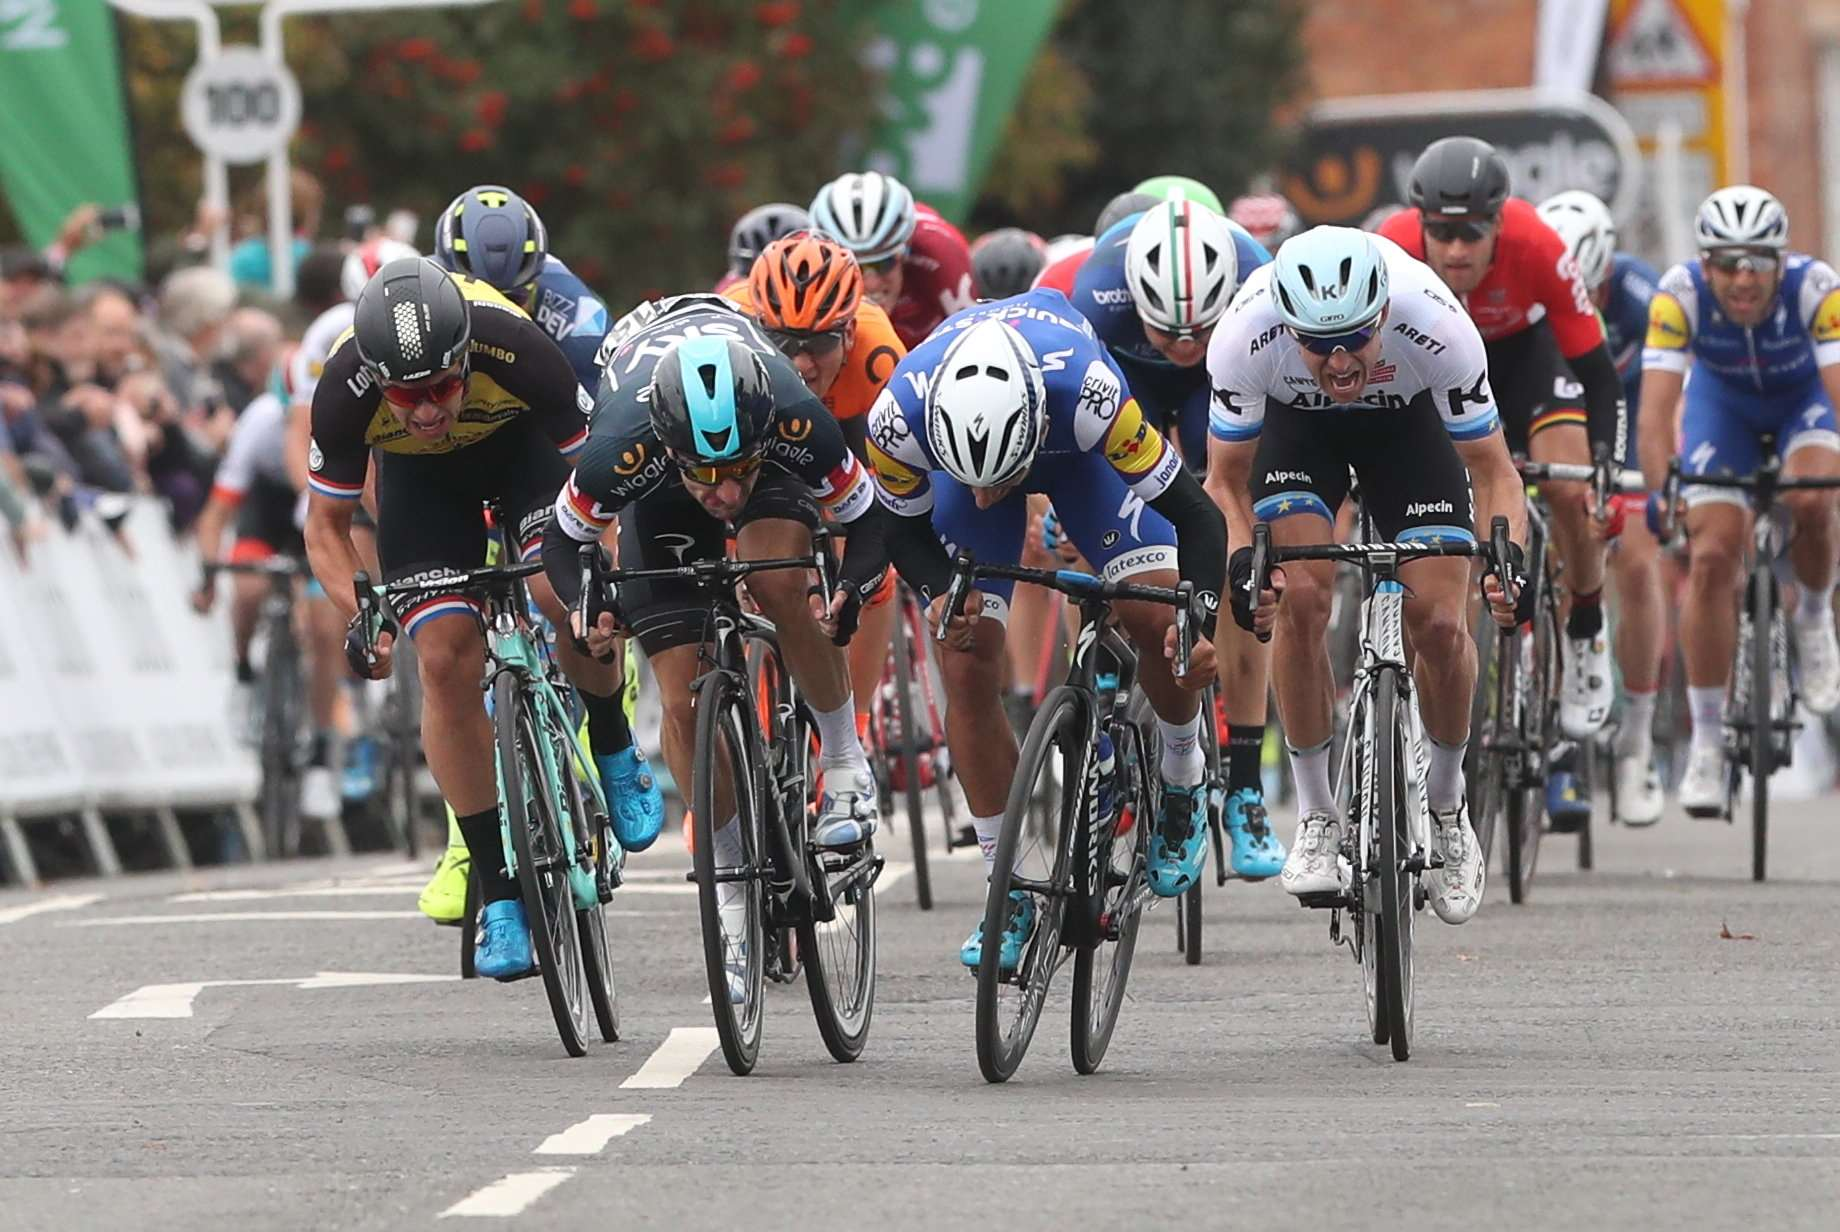 Riders battle for position in a sprint finish at Newark, in the Tour of Britain's fourth stage. Photograph: SWPix